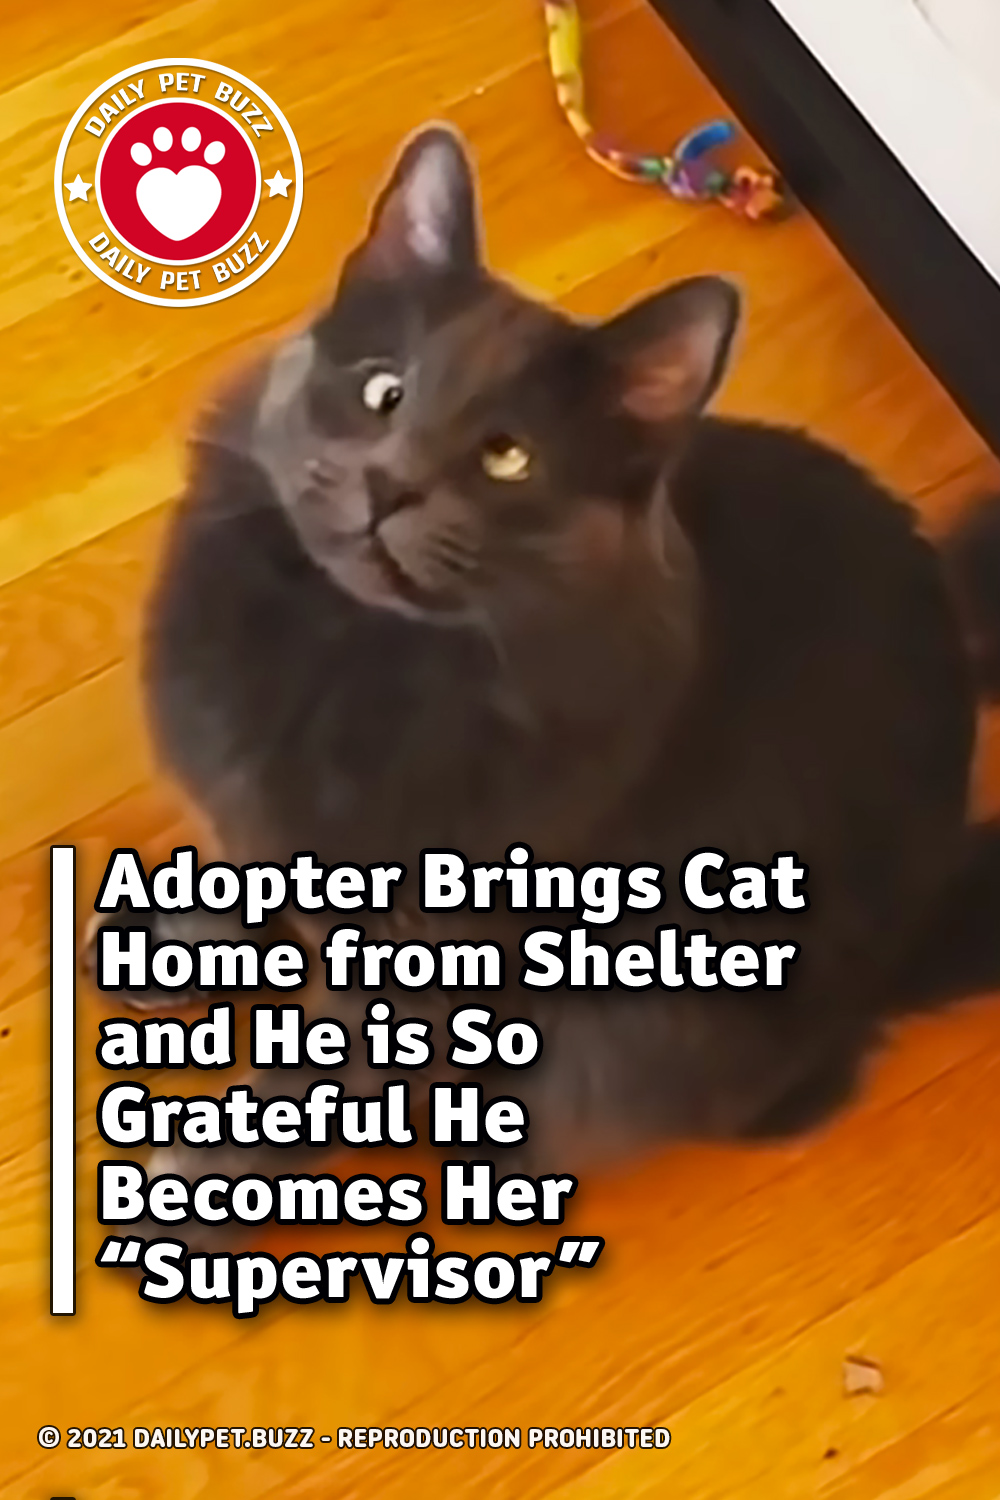 """Adopter Brings Cat Home from Shelter and He is So Grateful He Becomes Her """"Supervisor\"""